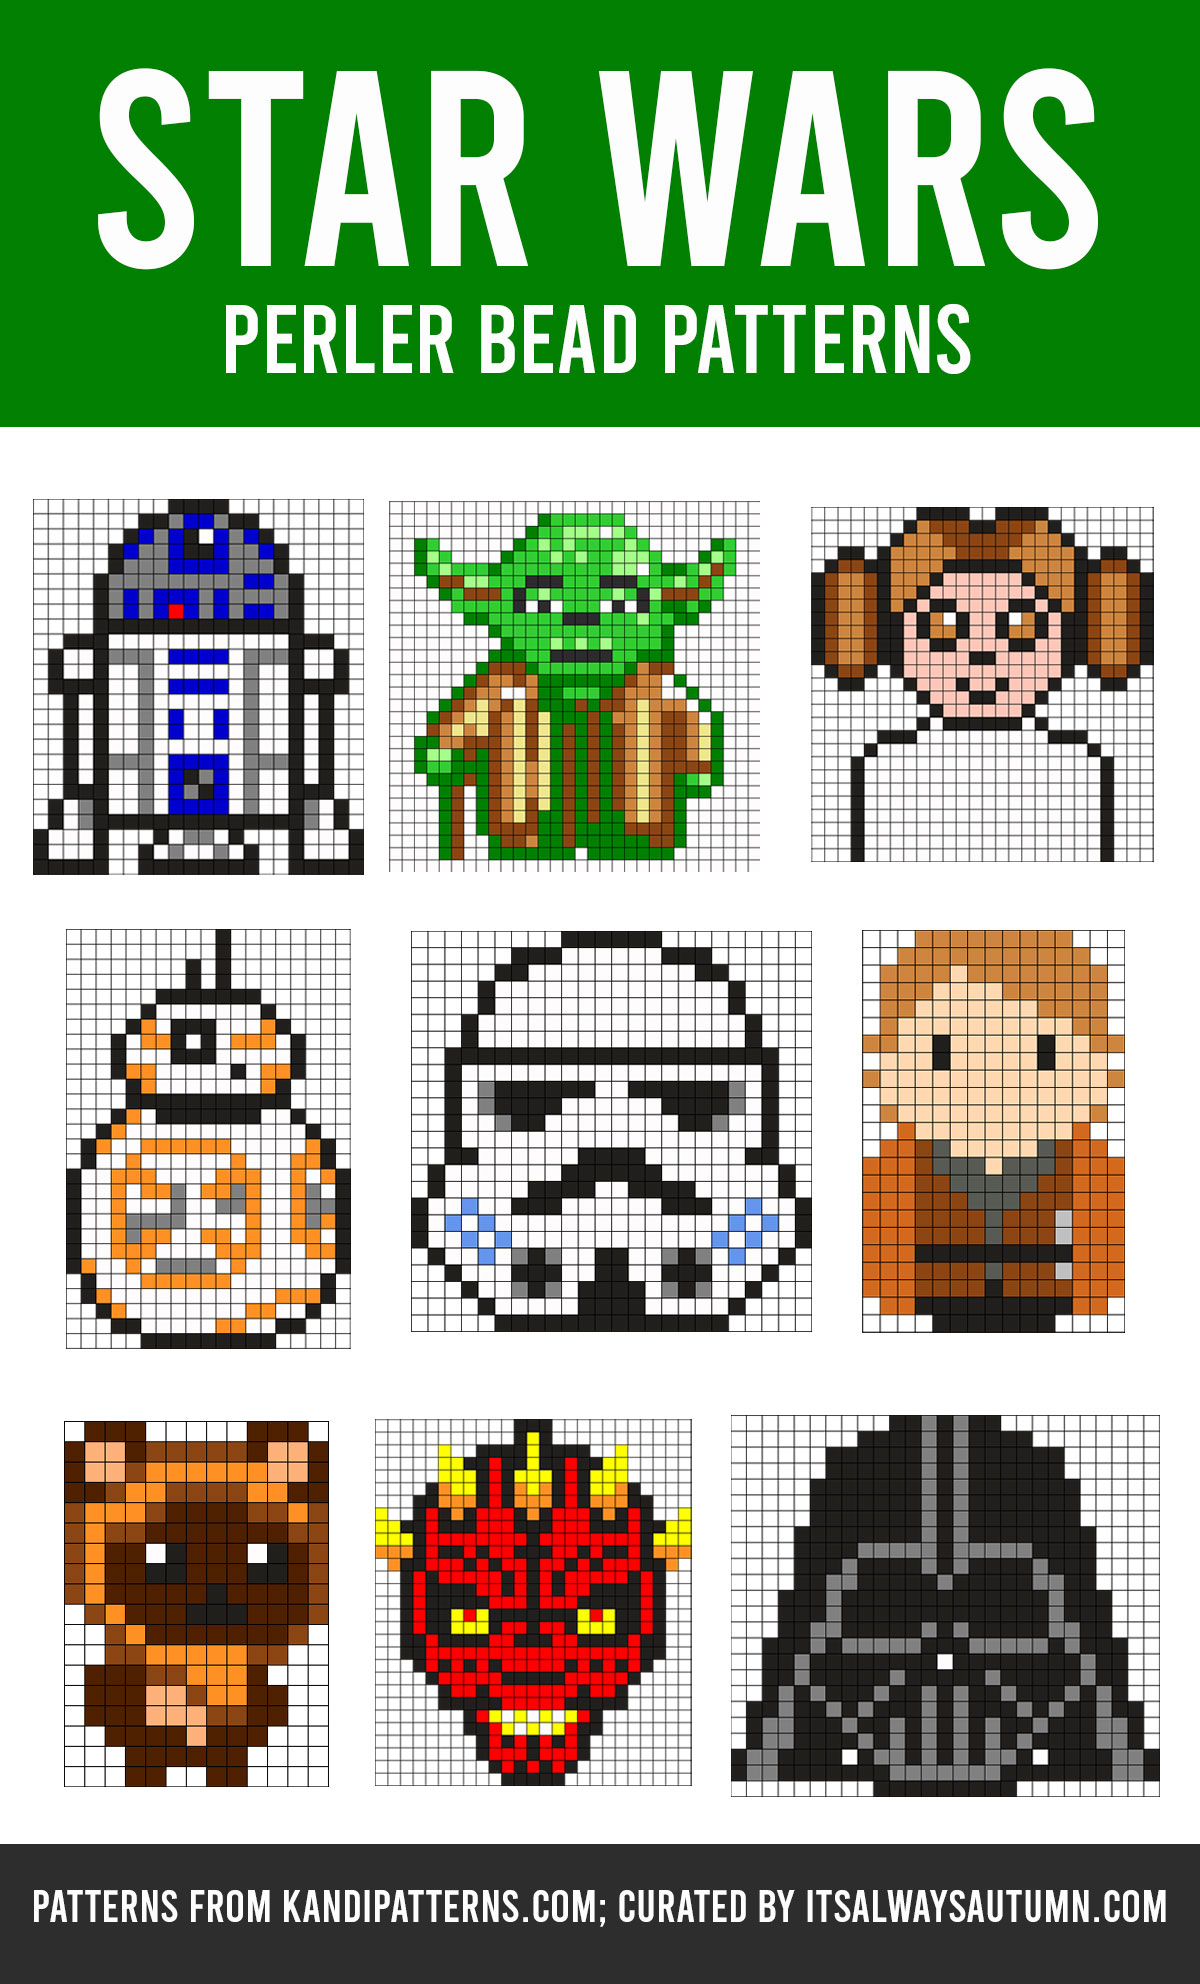 Star Wars Perler bead patternd